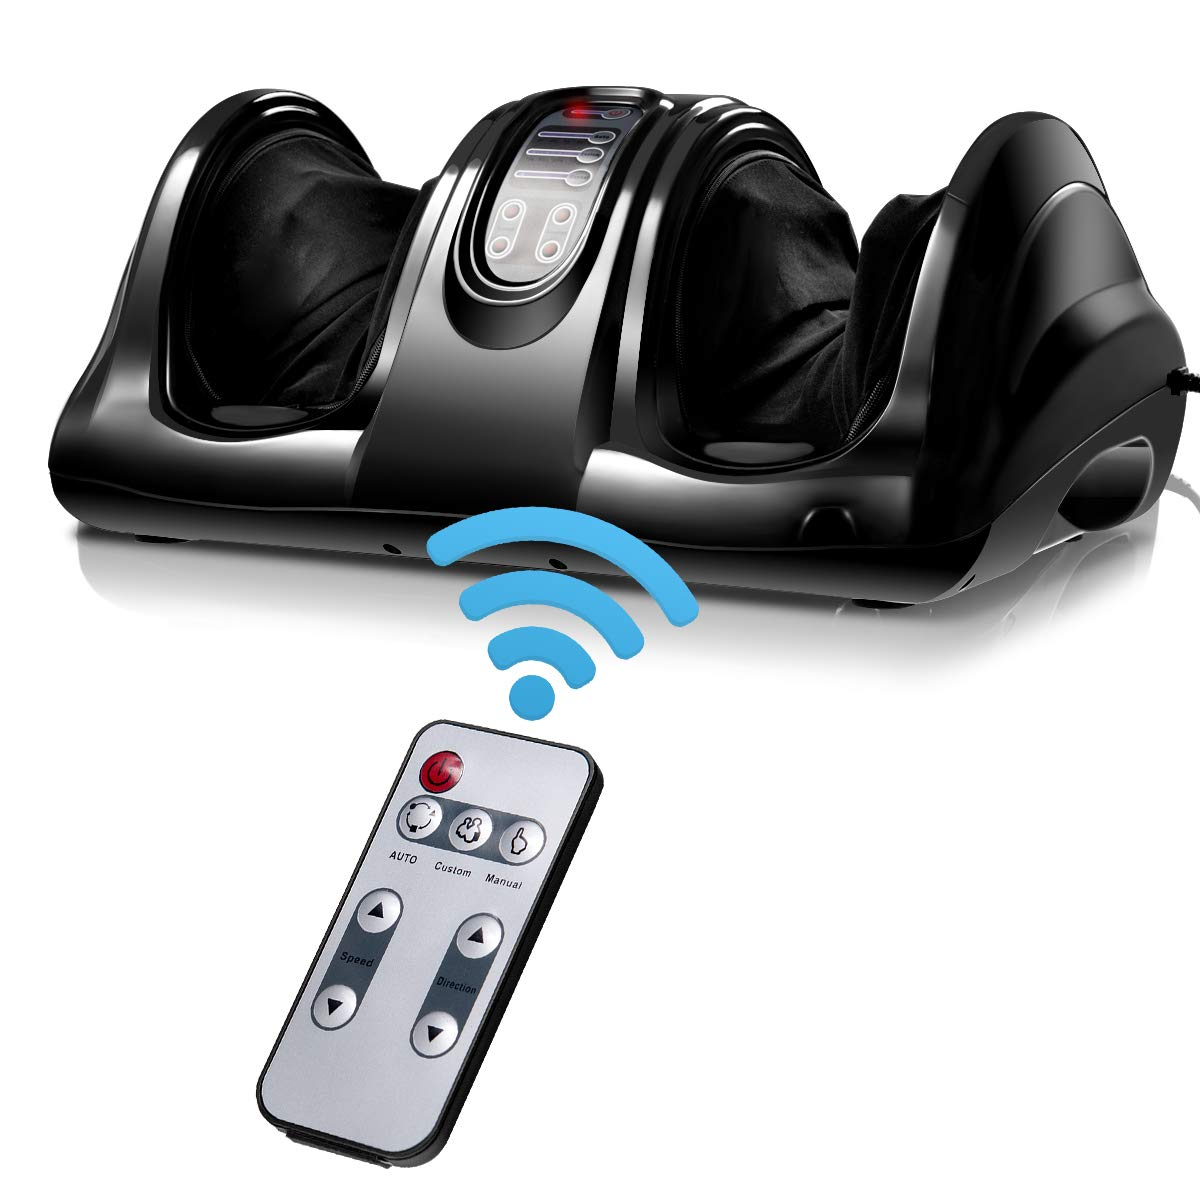 Giantex Foot Massager Machine Massage for Feet, Chronic Nerve Pain Therapy Spa Gift Deep Kneading Rolling Massage for Leg Calf Ankle,No Heating Function Electric Shiatsu Foot Massager w/Remote, Black